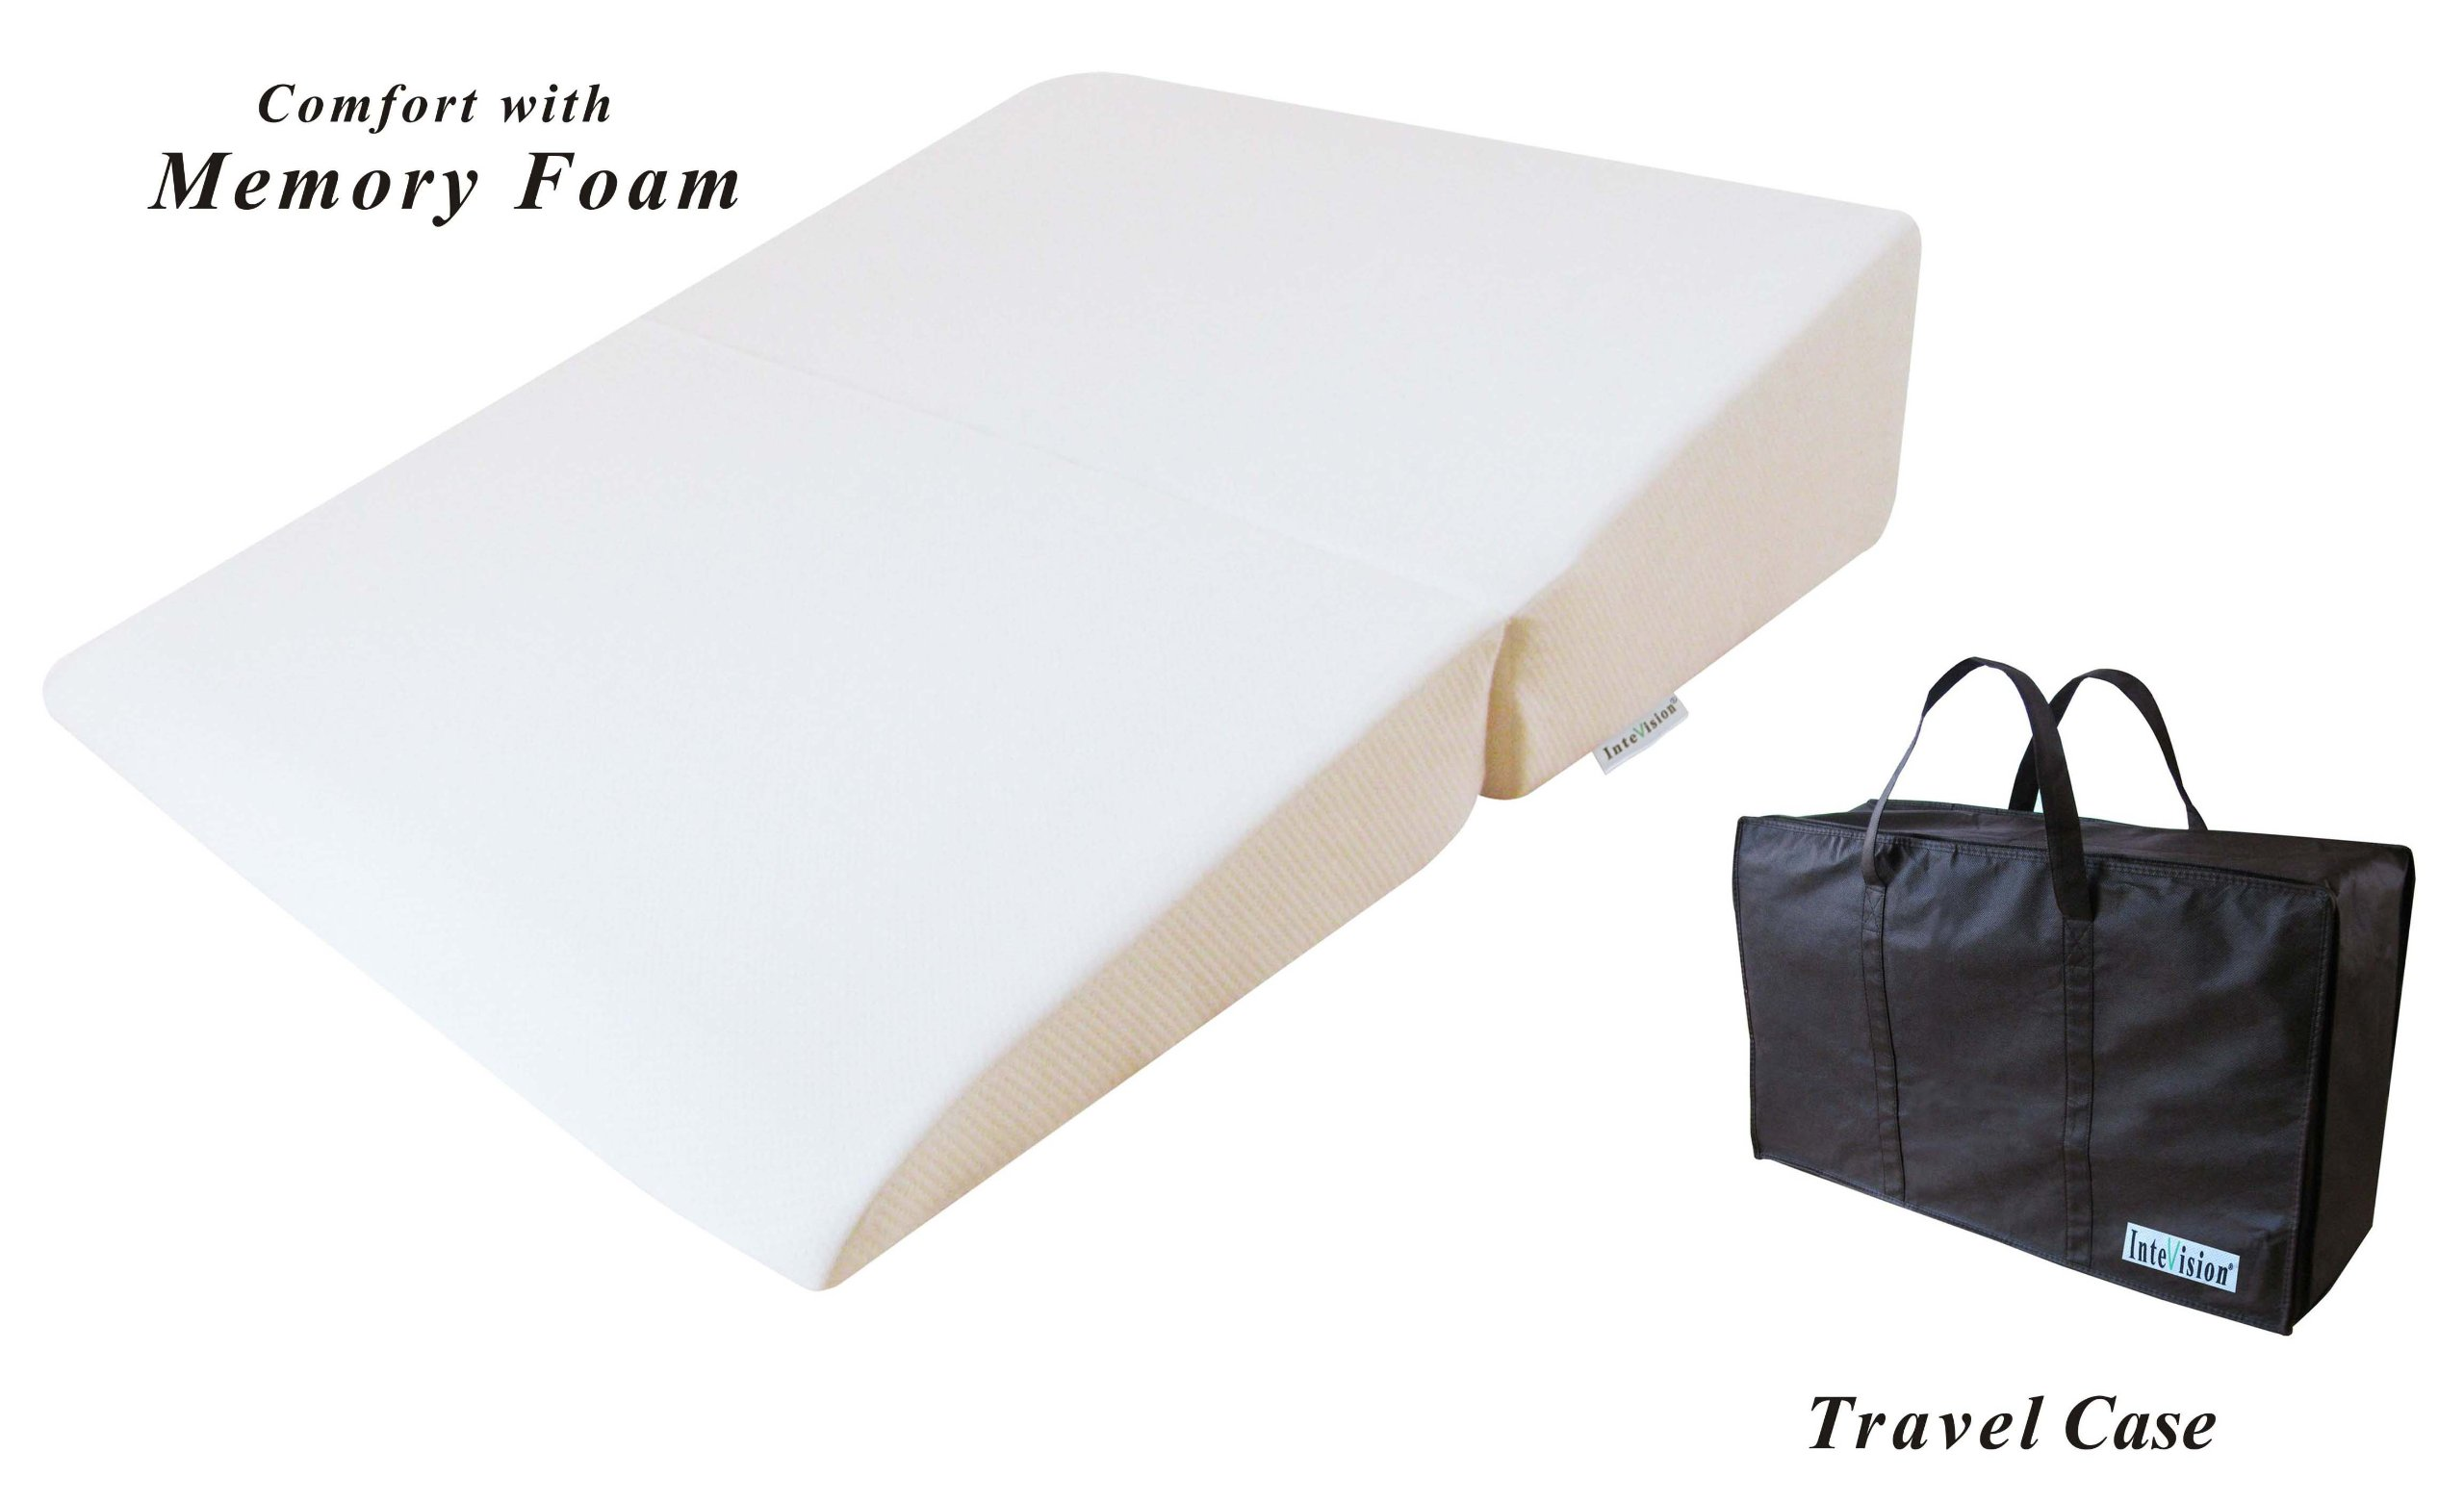 InteVision Folding Wedge Bed Pillow (32'' x 25'' x 6.5'') with a Carrying Case by InteVision (Image #1)